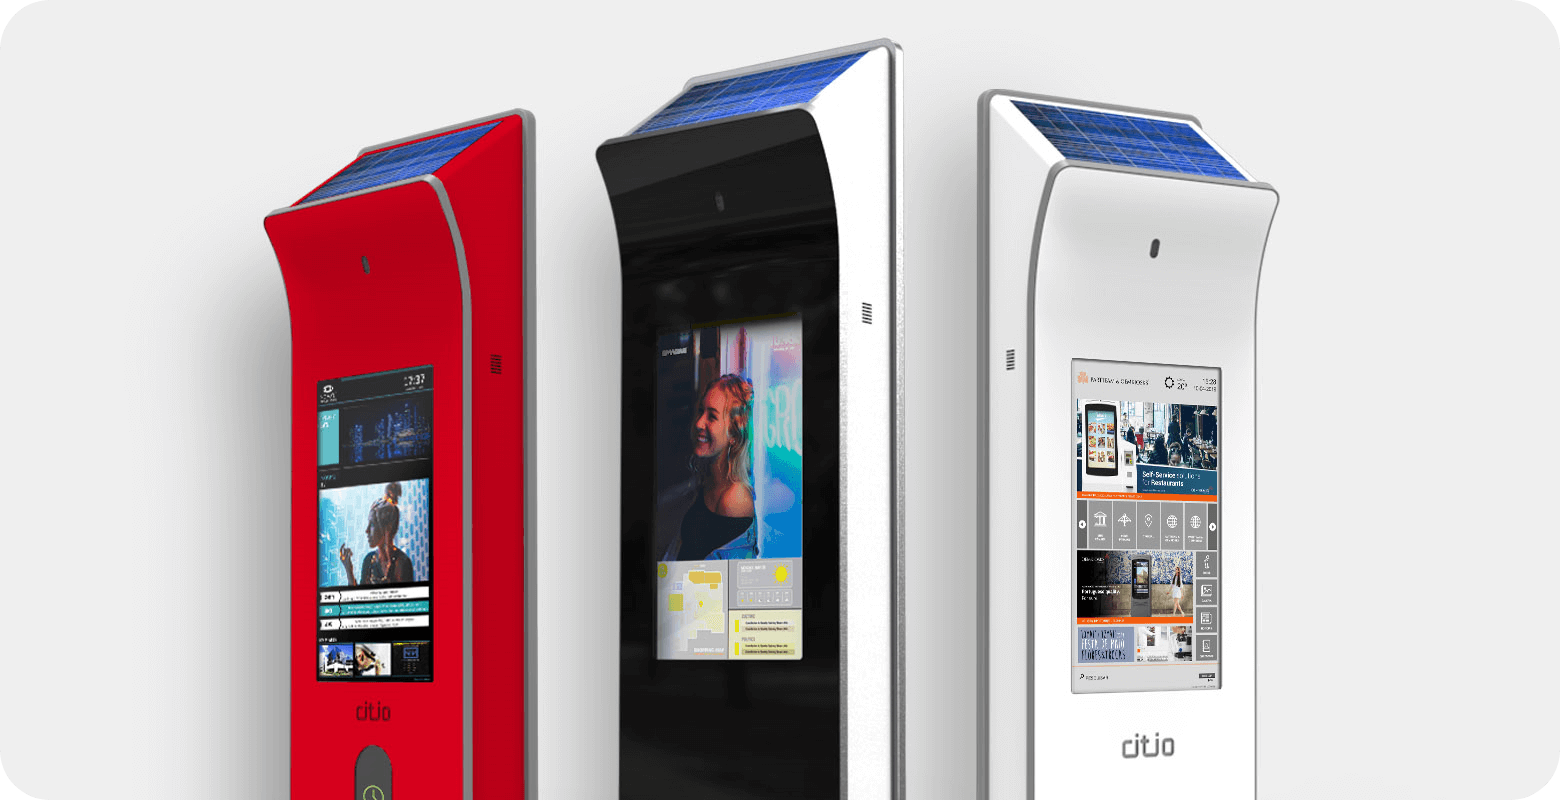 Citio - Paper by PARTTEAM & OEMKIOSKS